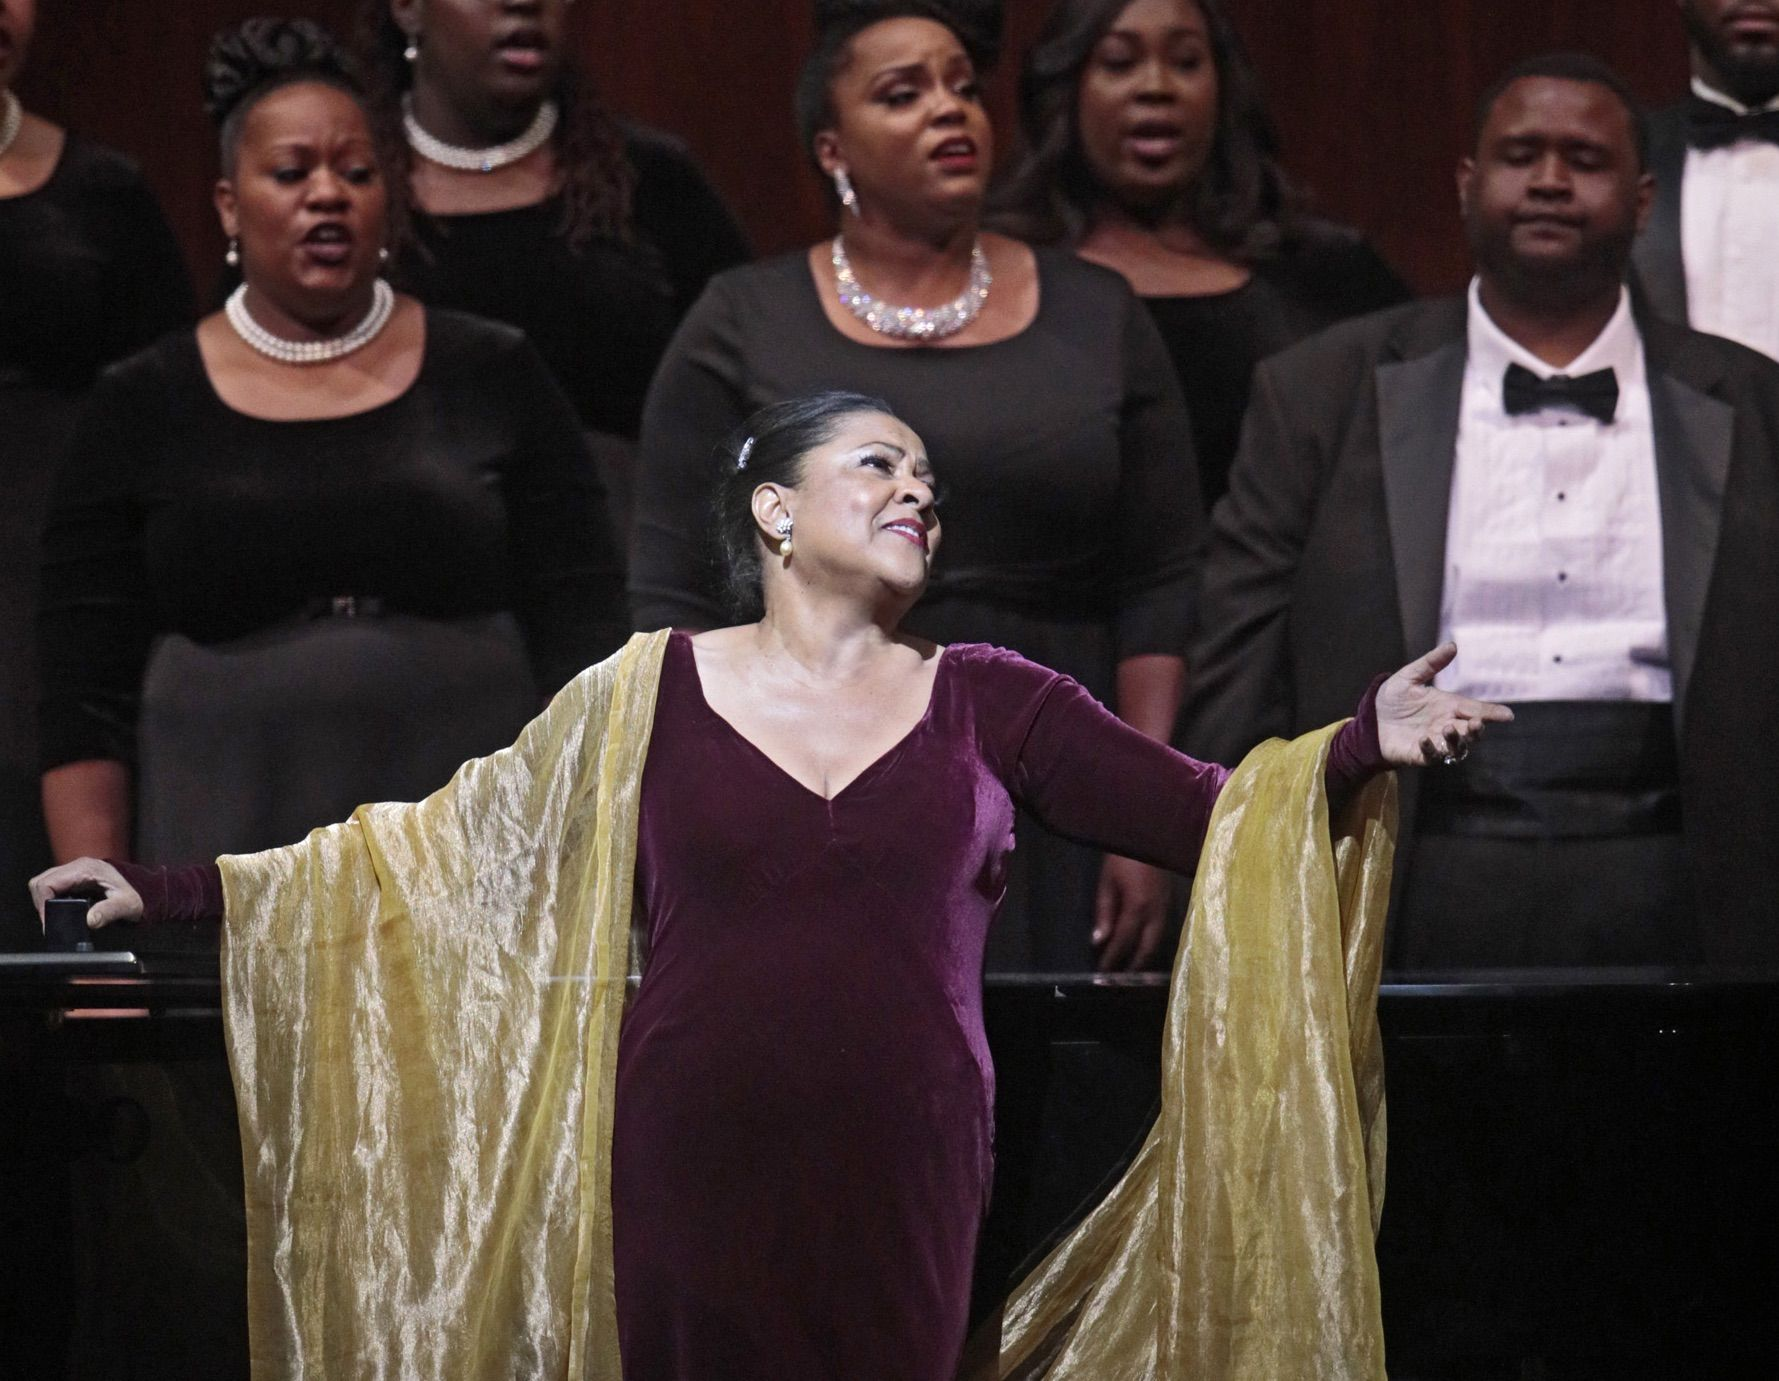 CLASSY COMEBACK: Storied soprano returns, in glorious voice, with powerful message